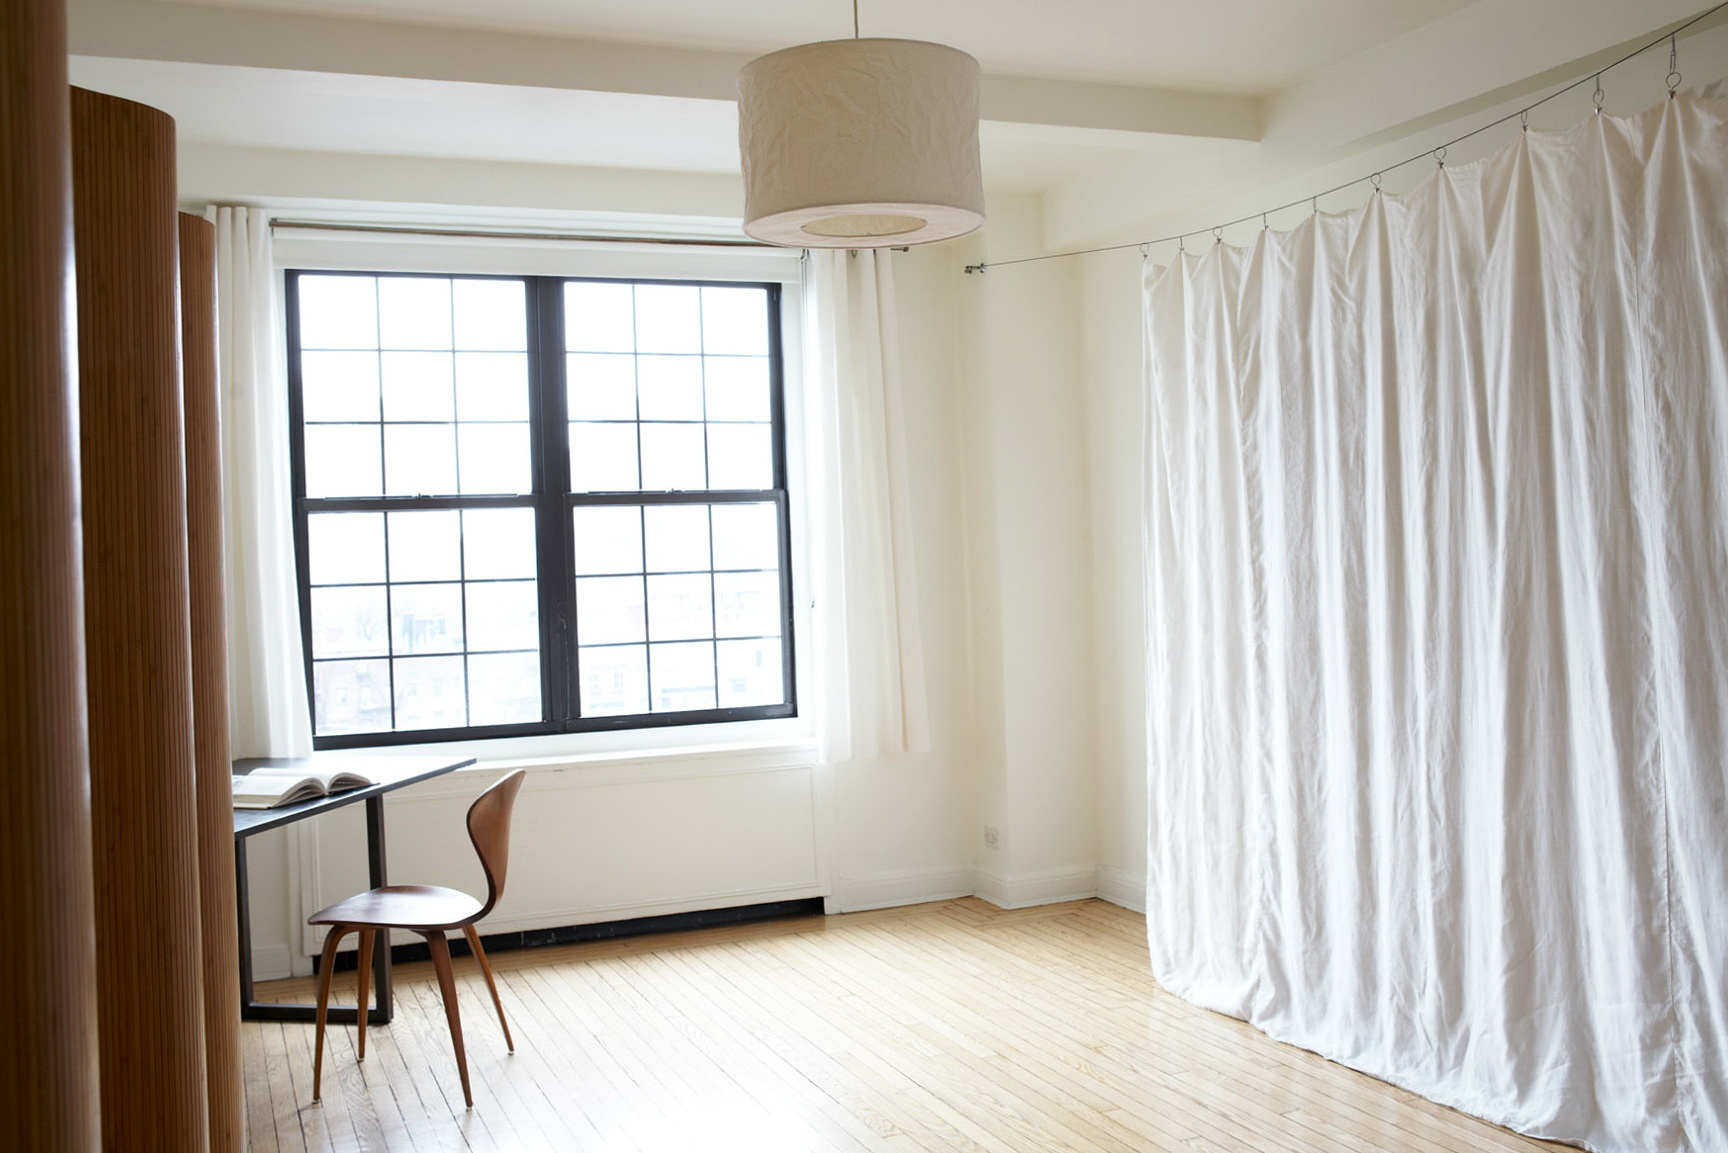 Room Dividers Home Depot Curtain Room Dividers Home Depot Home Design Ideas